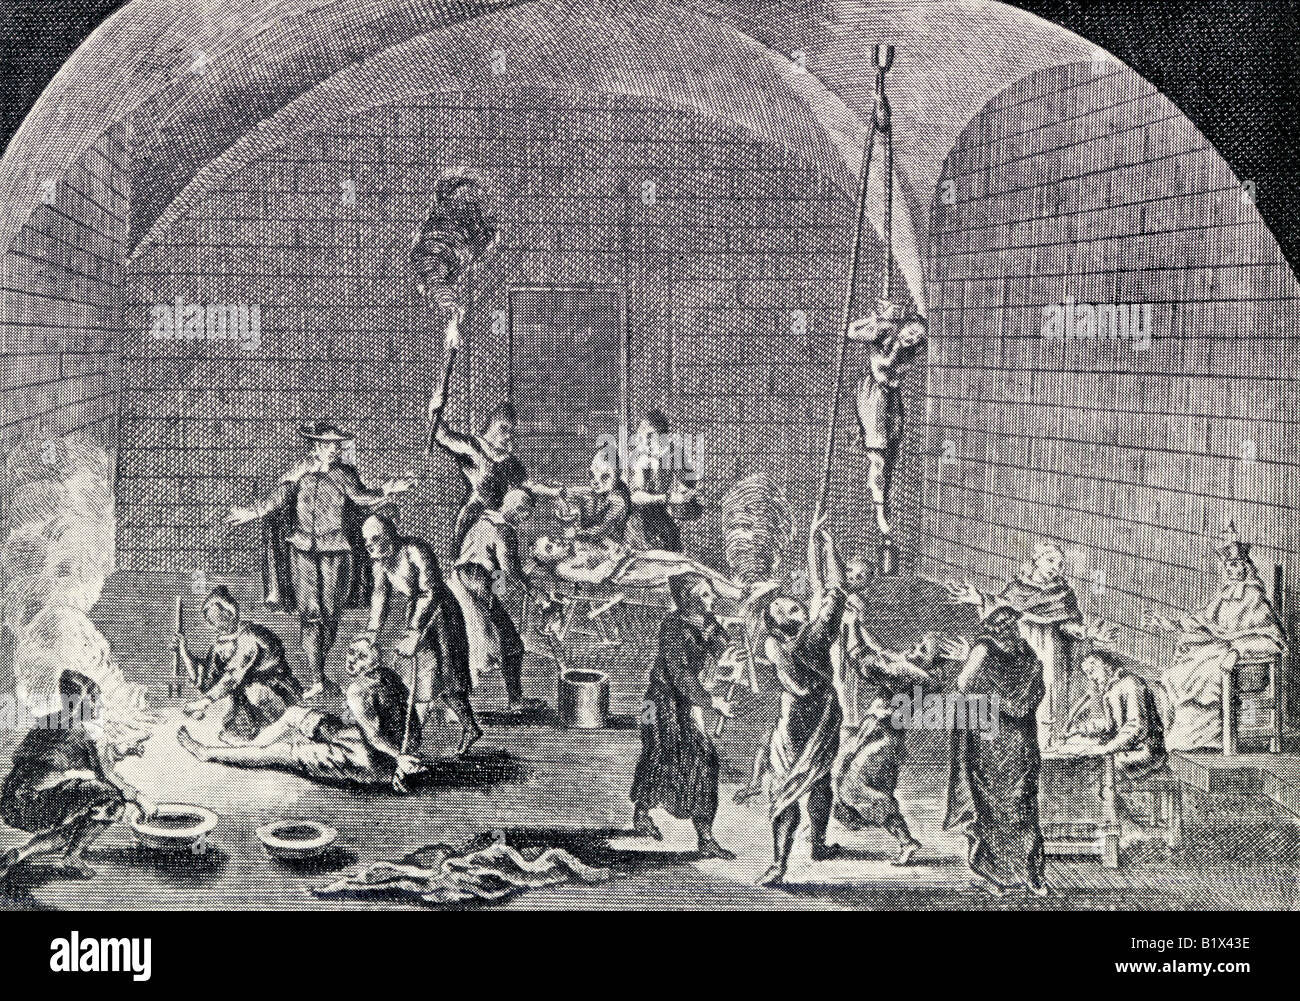 spanish inquisition essay questions The spanish inquisition name institution the spanish inquisition the anti-semite uprising of 1391 saw the massive conversion of jews to catholicism in the bid to save their lives.